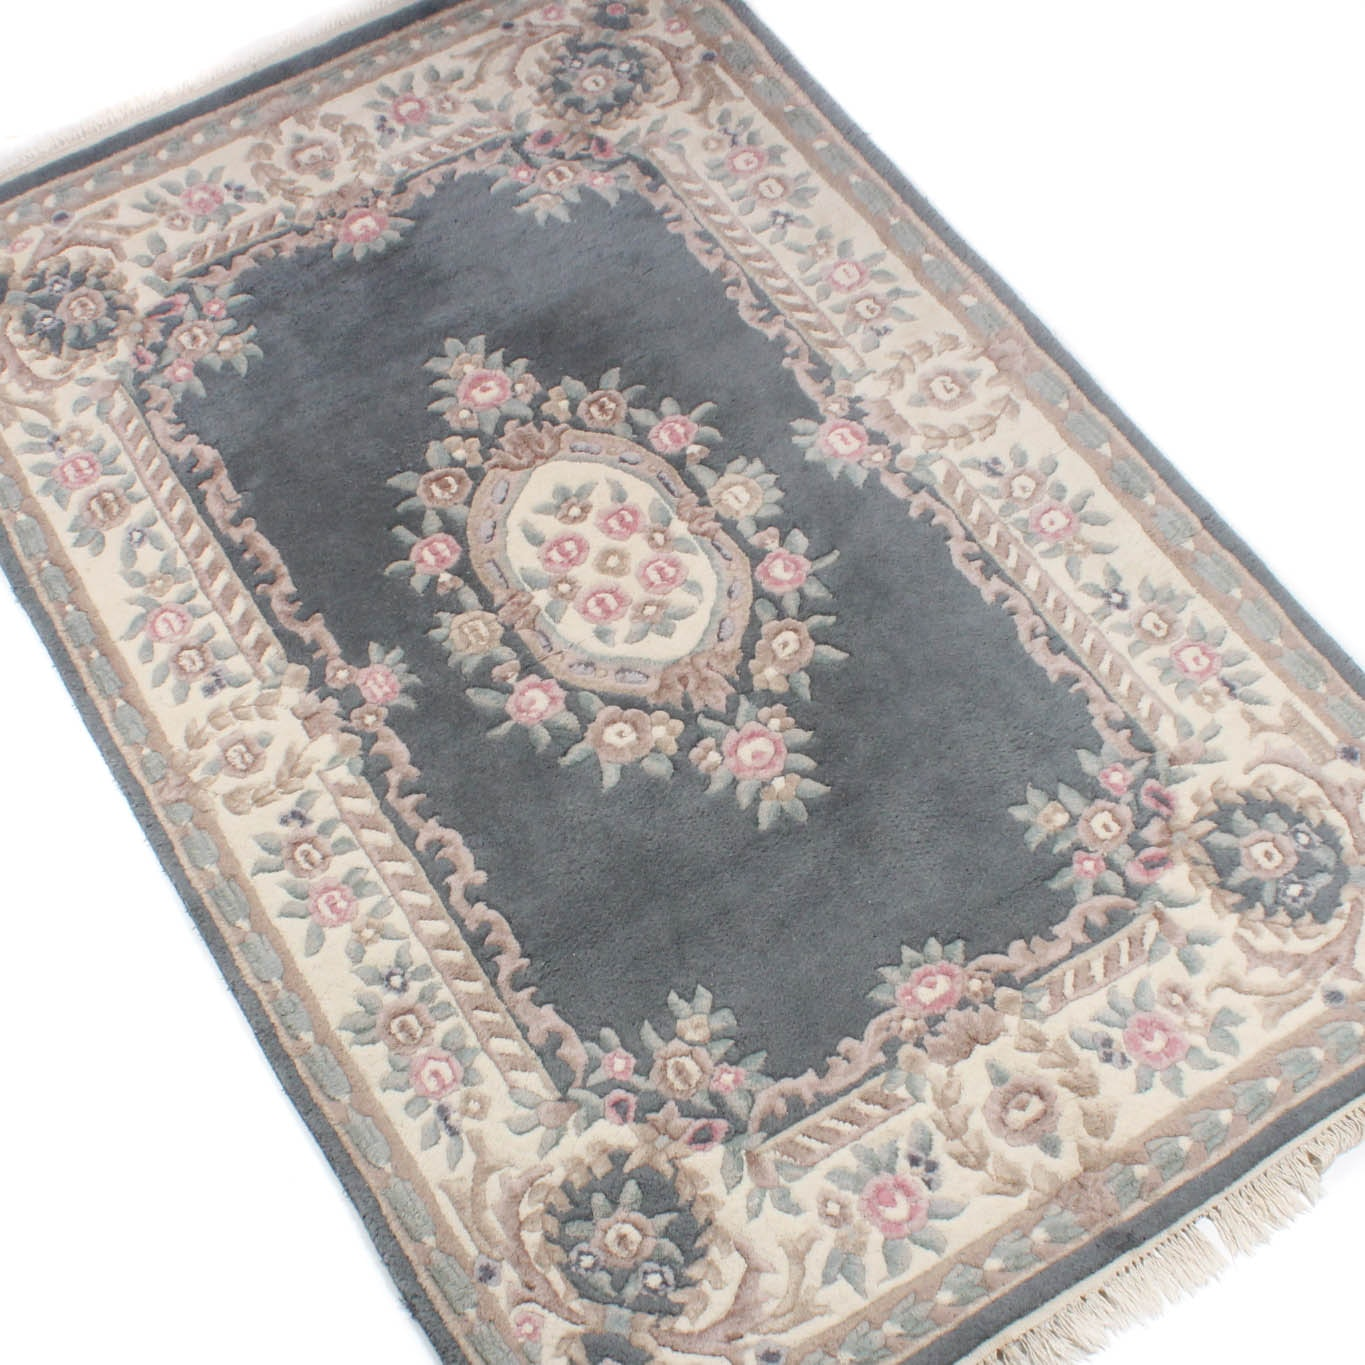 Power Loomed Chinese Style Sculpted Wool Area Rug